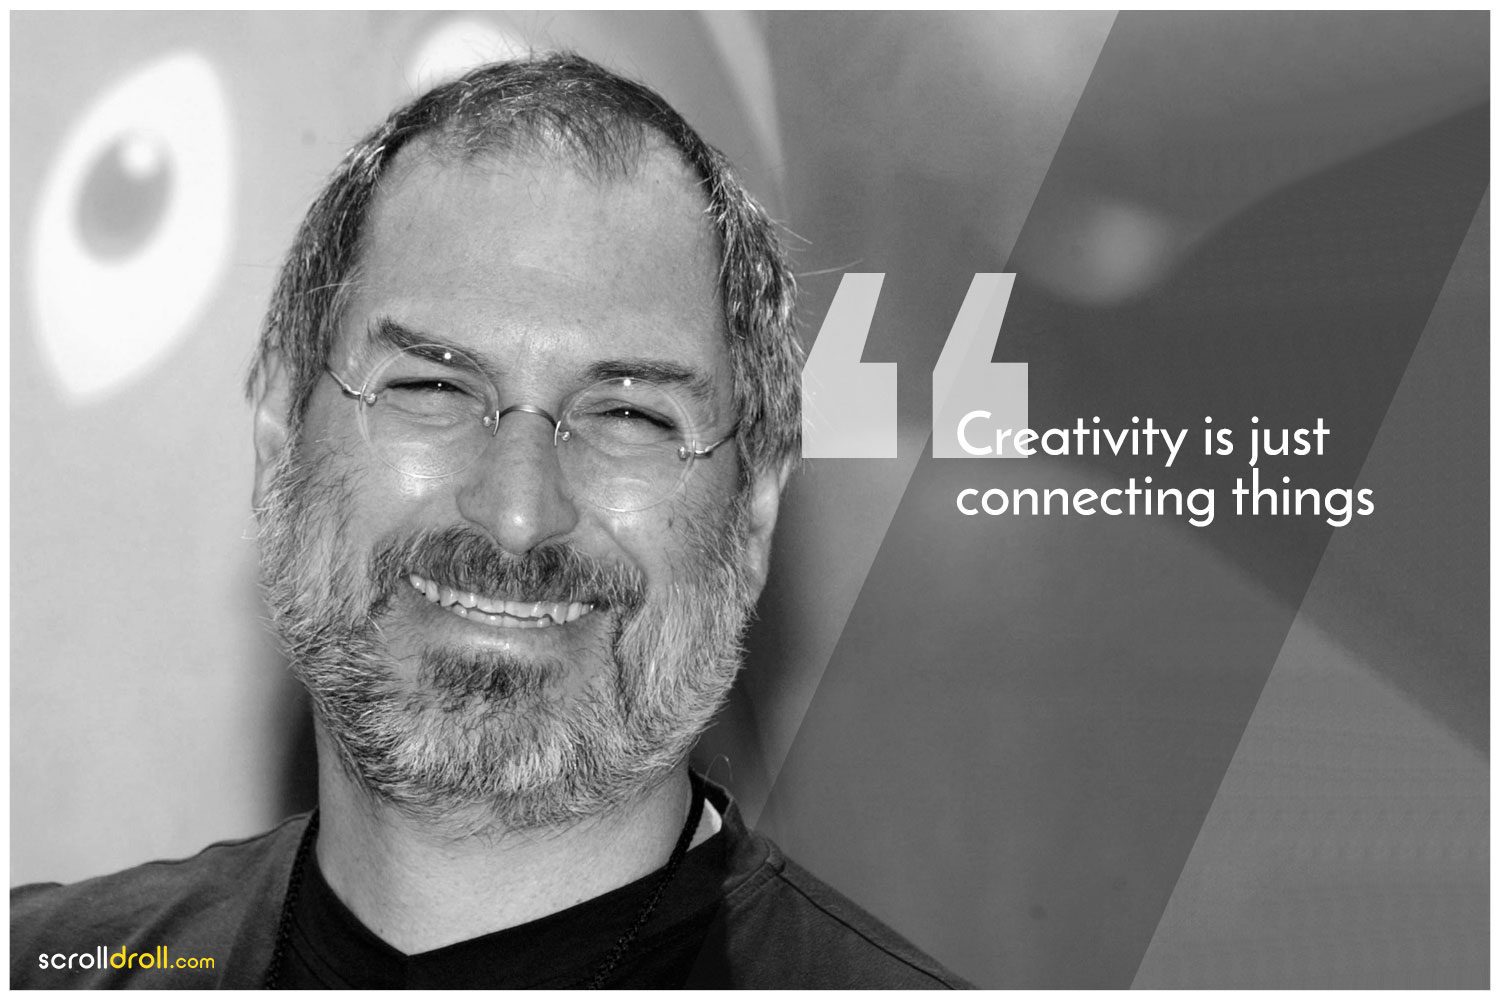 -Steve jobs Quotes- Creativity is just connecting things